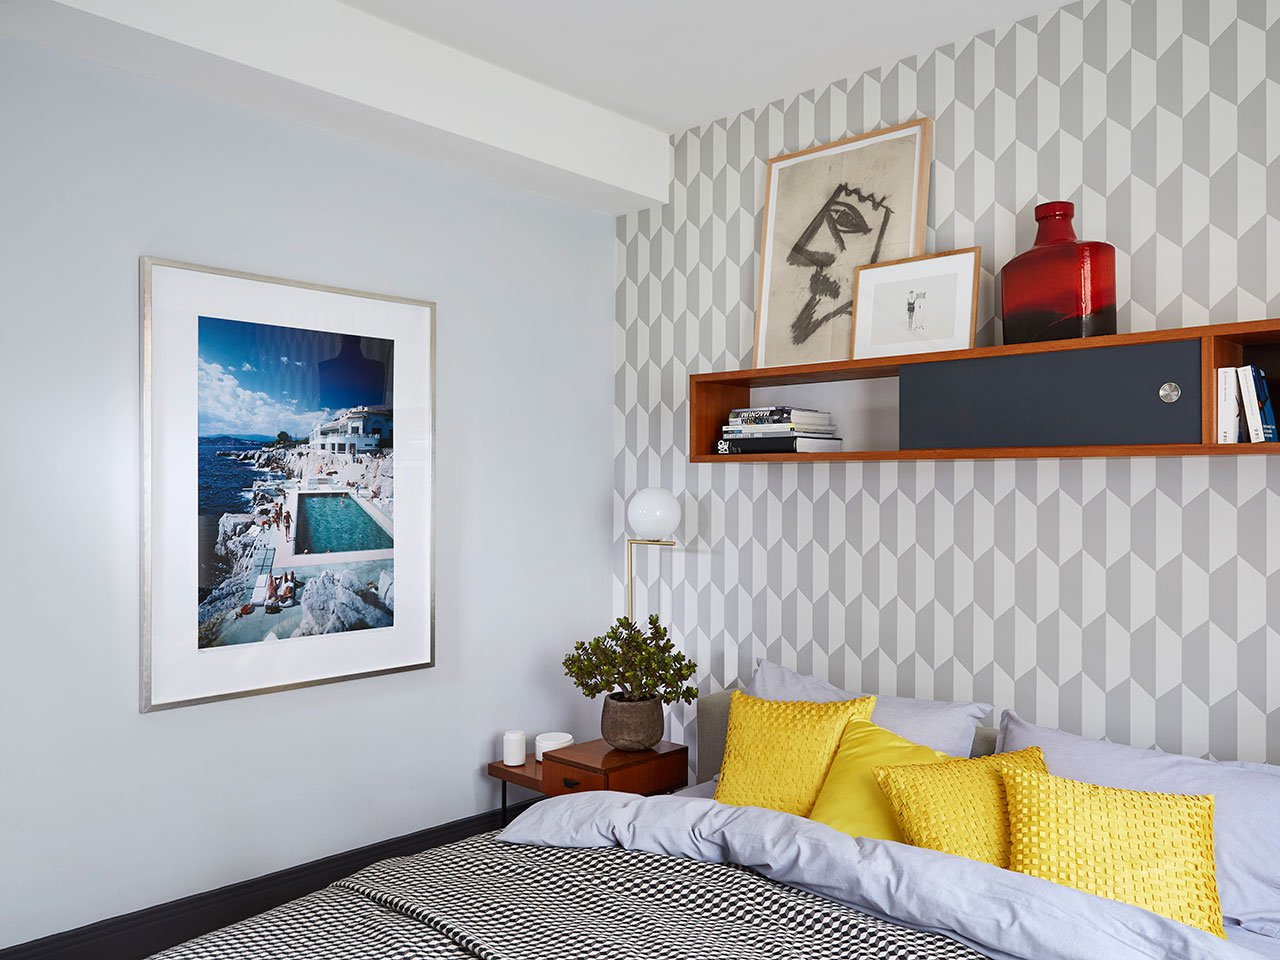 Timeless Luxury Apartment in Monaco Filled with Mid Century Lighting 3 mid-century lighting Timeless Luxury Apartment in Monaco Filled with Mid-Century Lighting Timeless Luxury Apartment in Monaco Filled with Mid Century Lighting 14